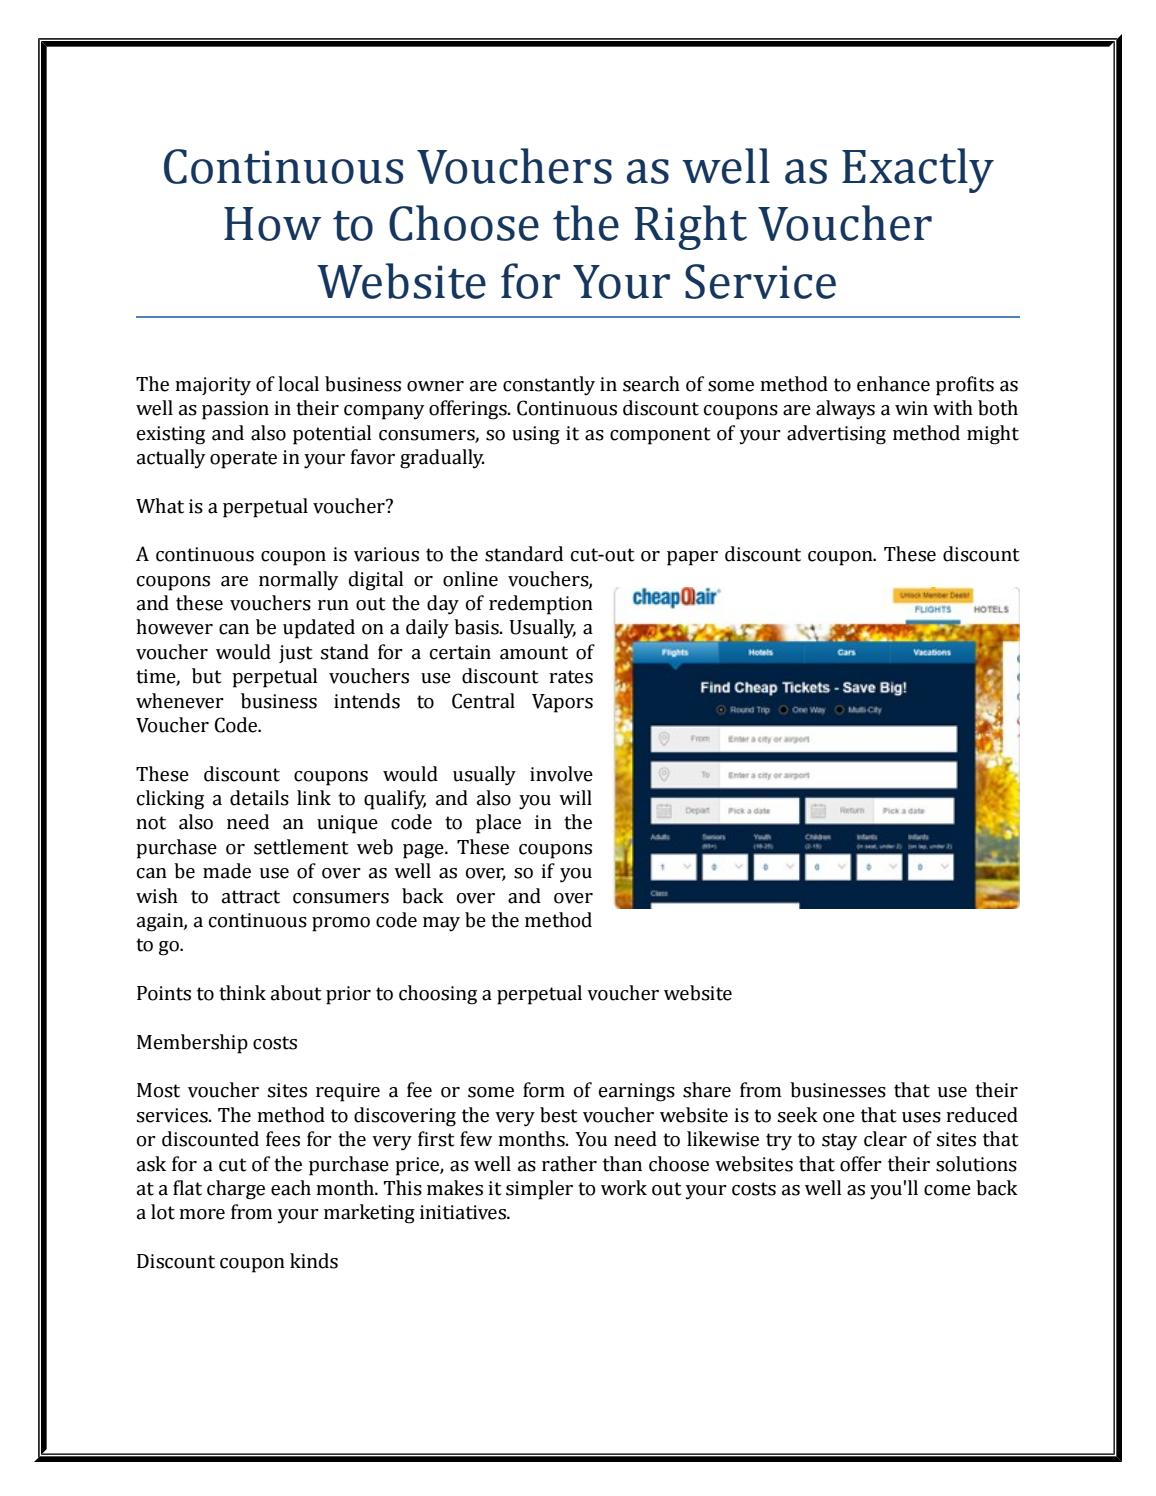 Continuous Vouchers As Well As Exactly How To Choose The Right Voucher Website For Your Service By Trina Mc Michaels Issuu